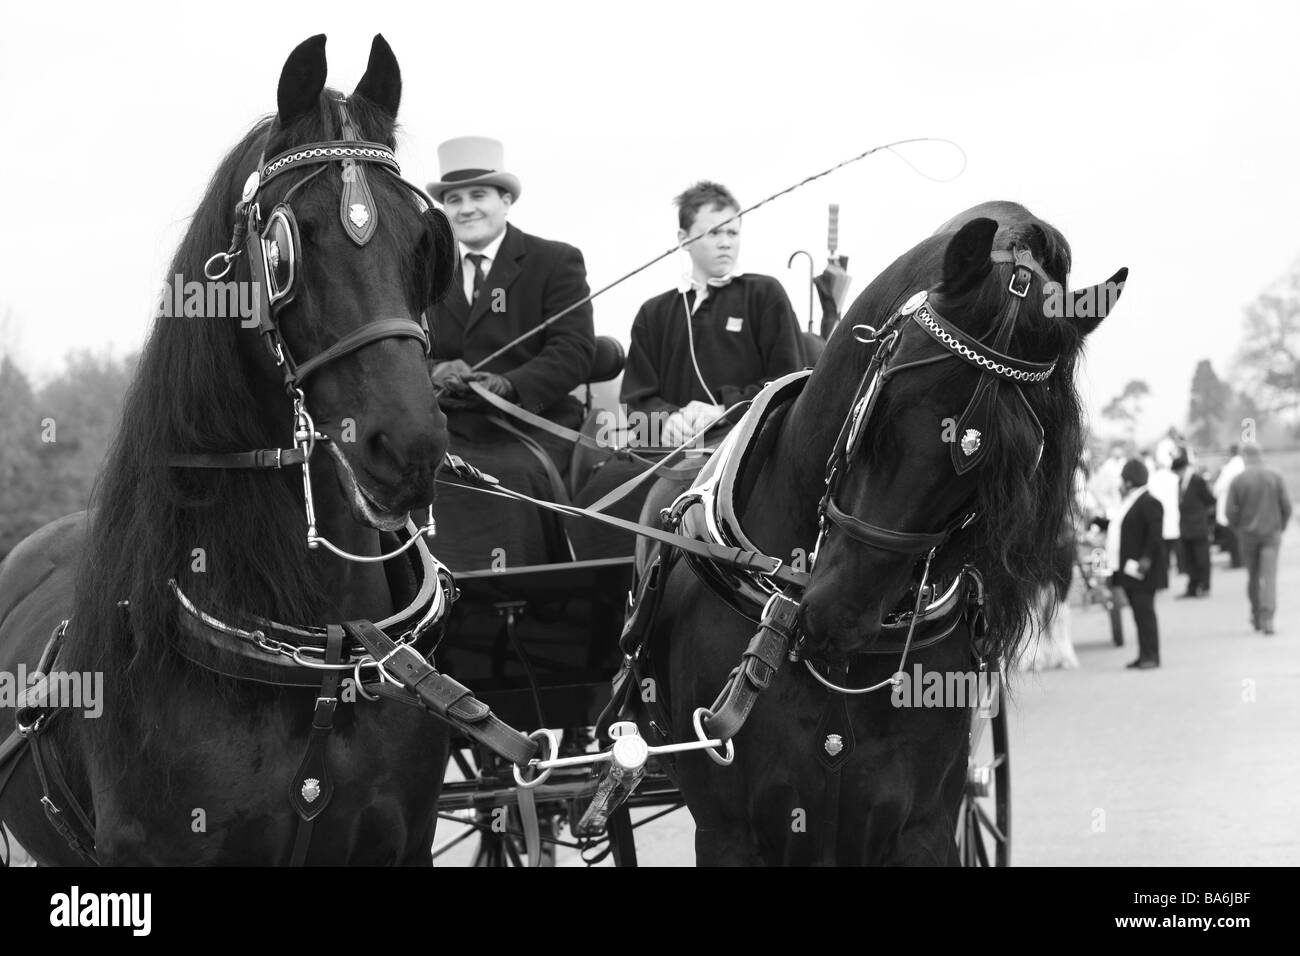 Horses pulling carriages at The London Harness Horse Parade - Stock Image